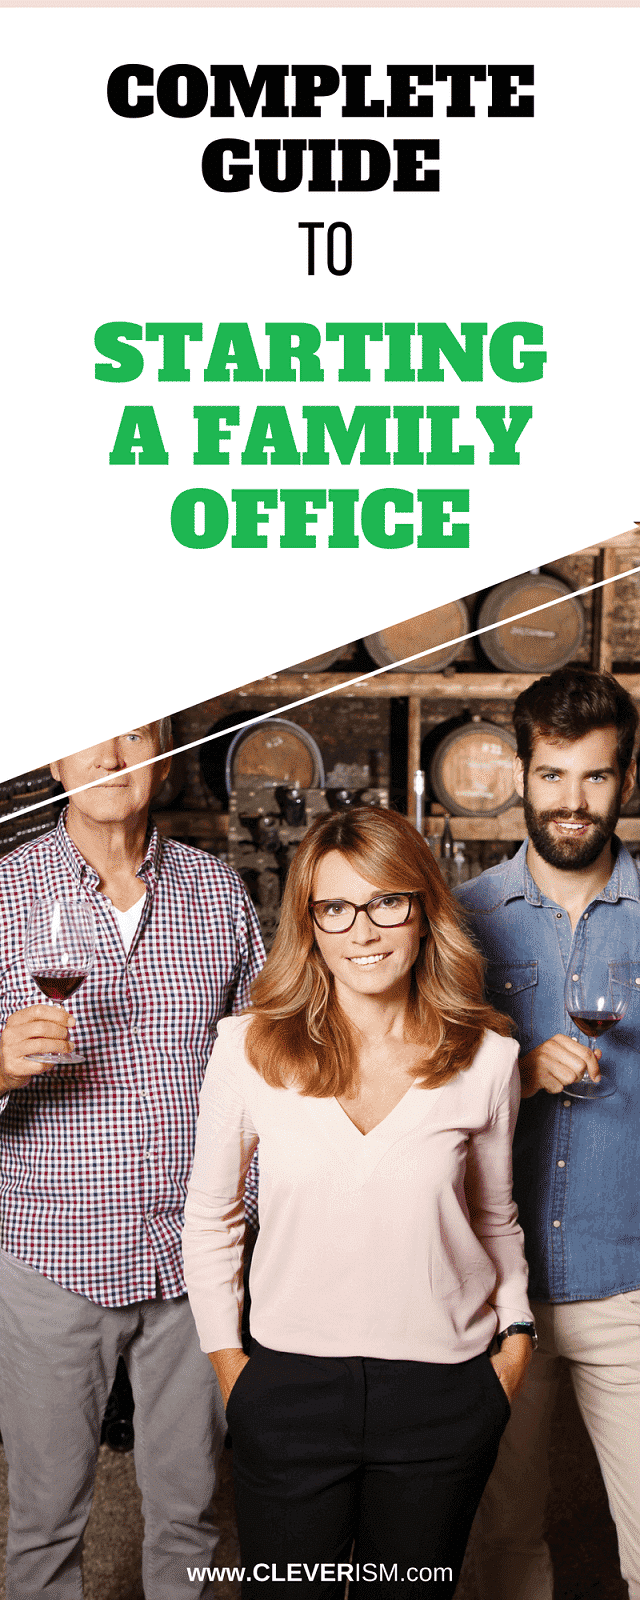 Complete Guide to Starting a Family Office